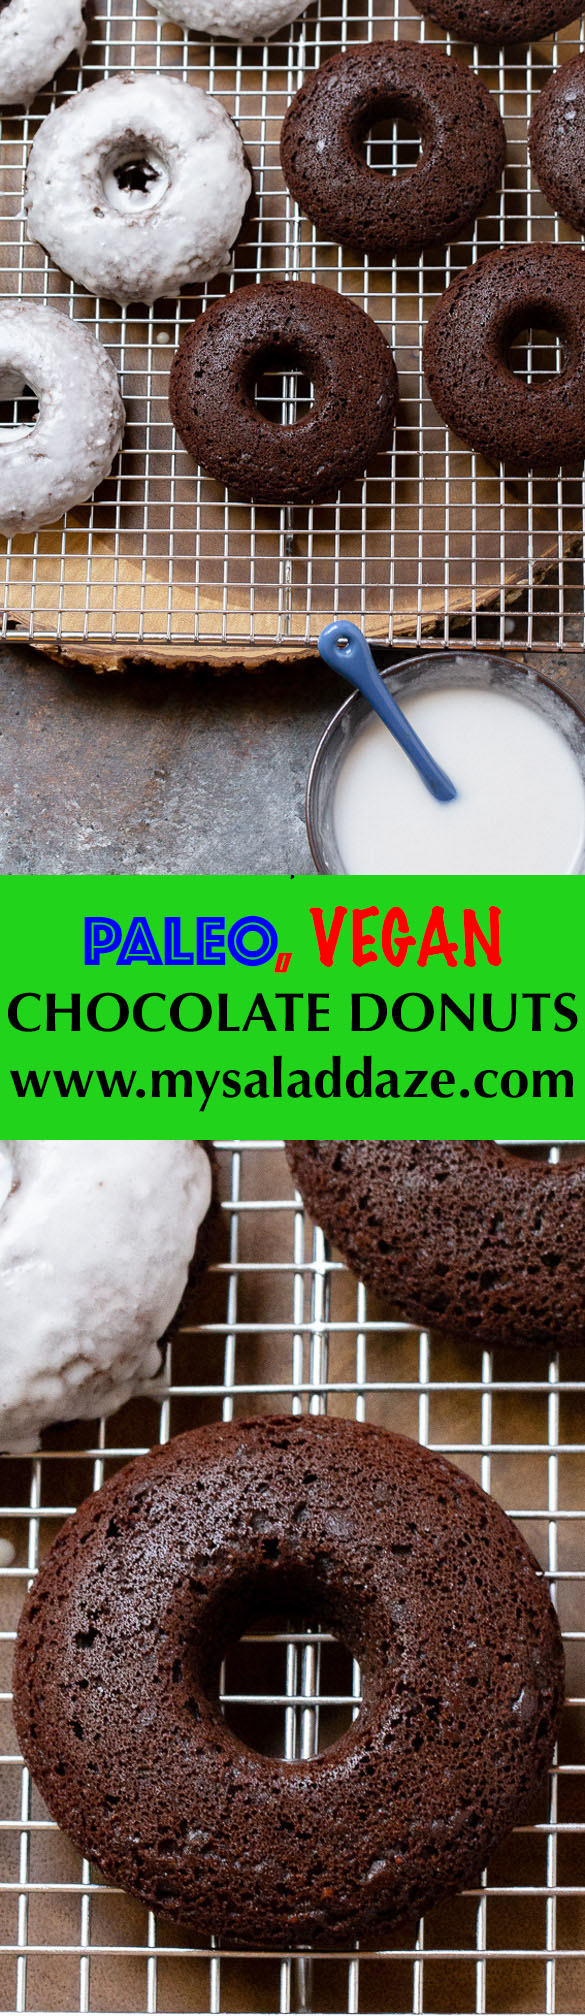 paleo vegan chocolate cake donuts